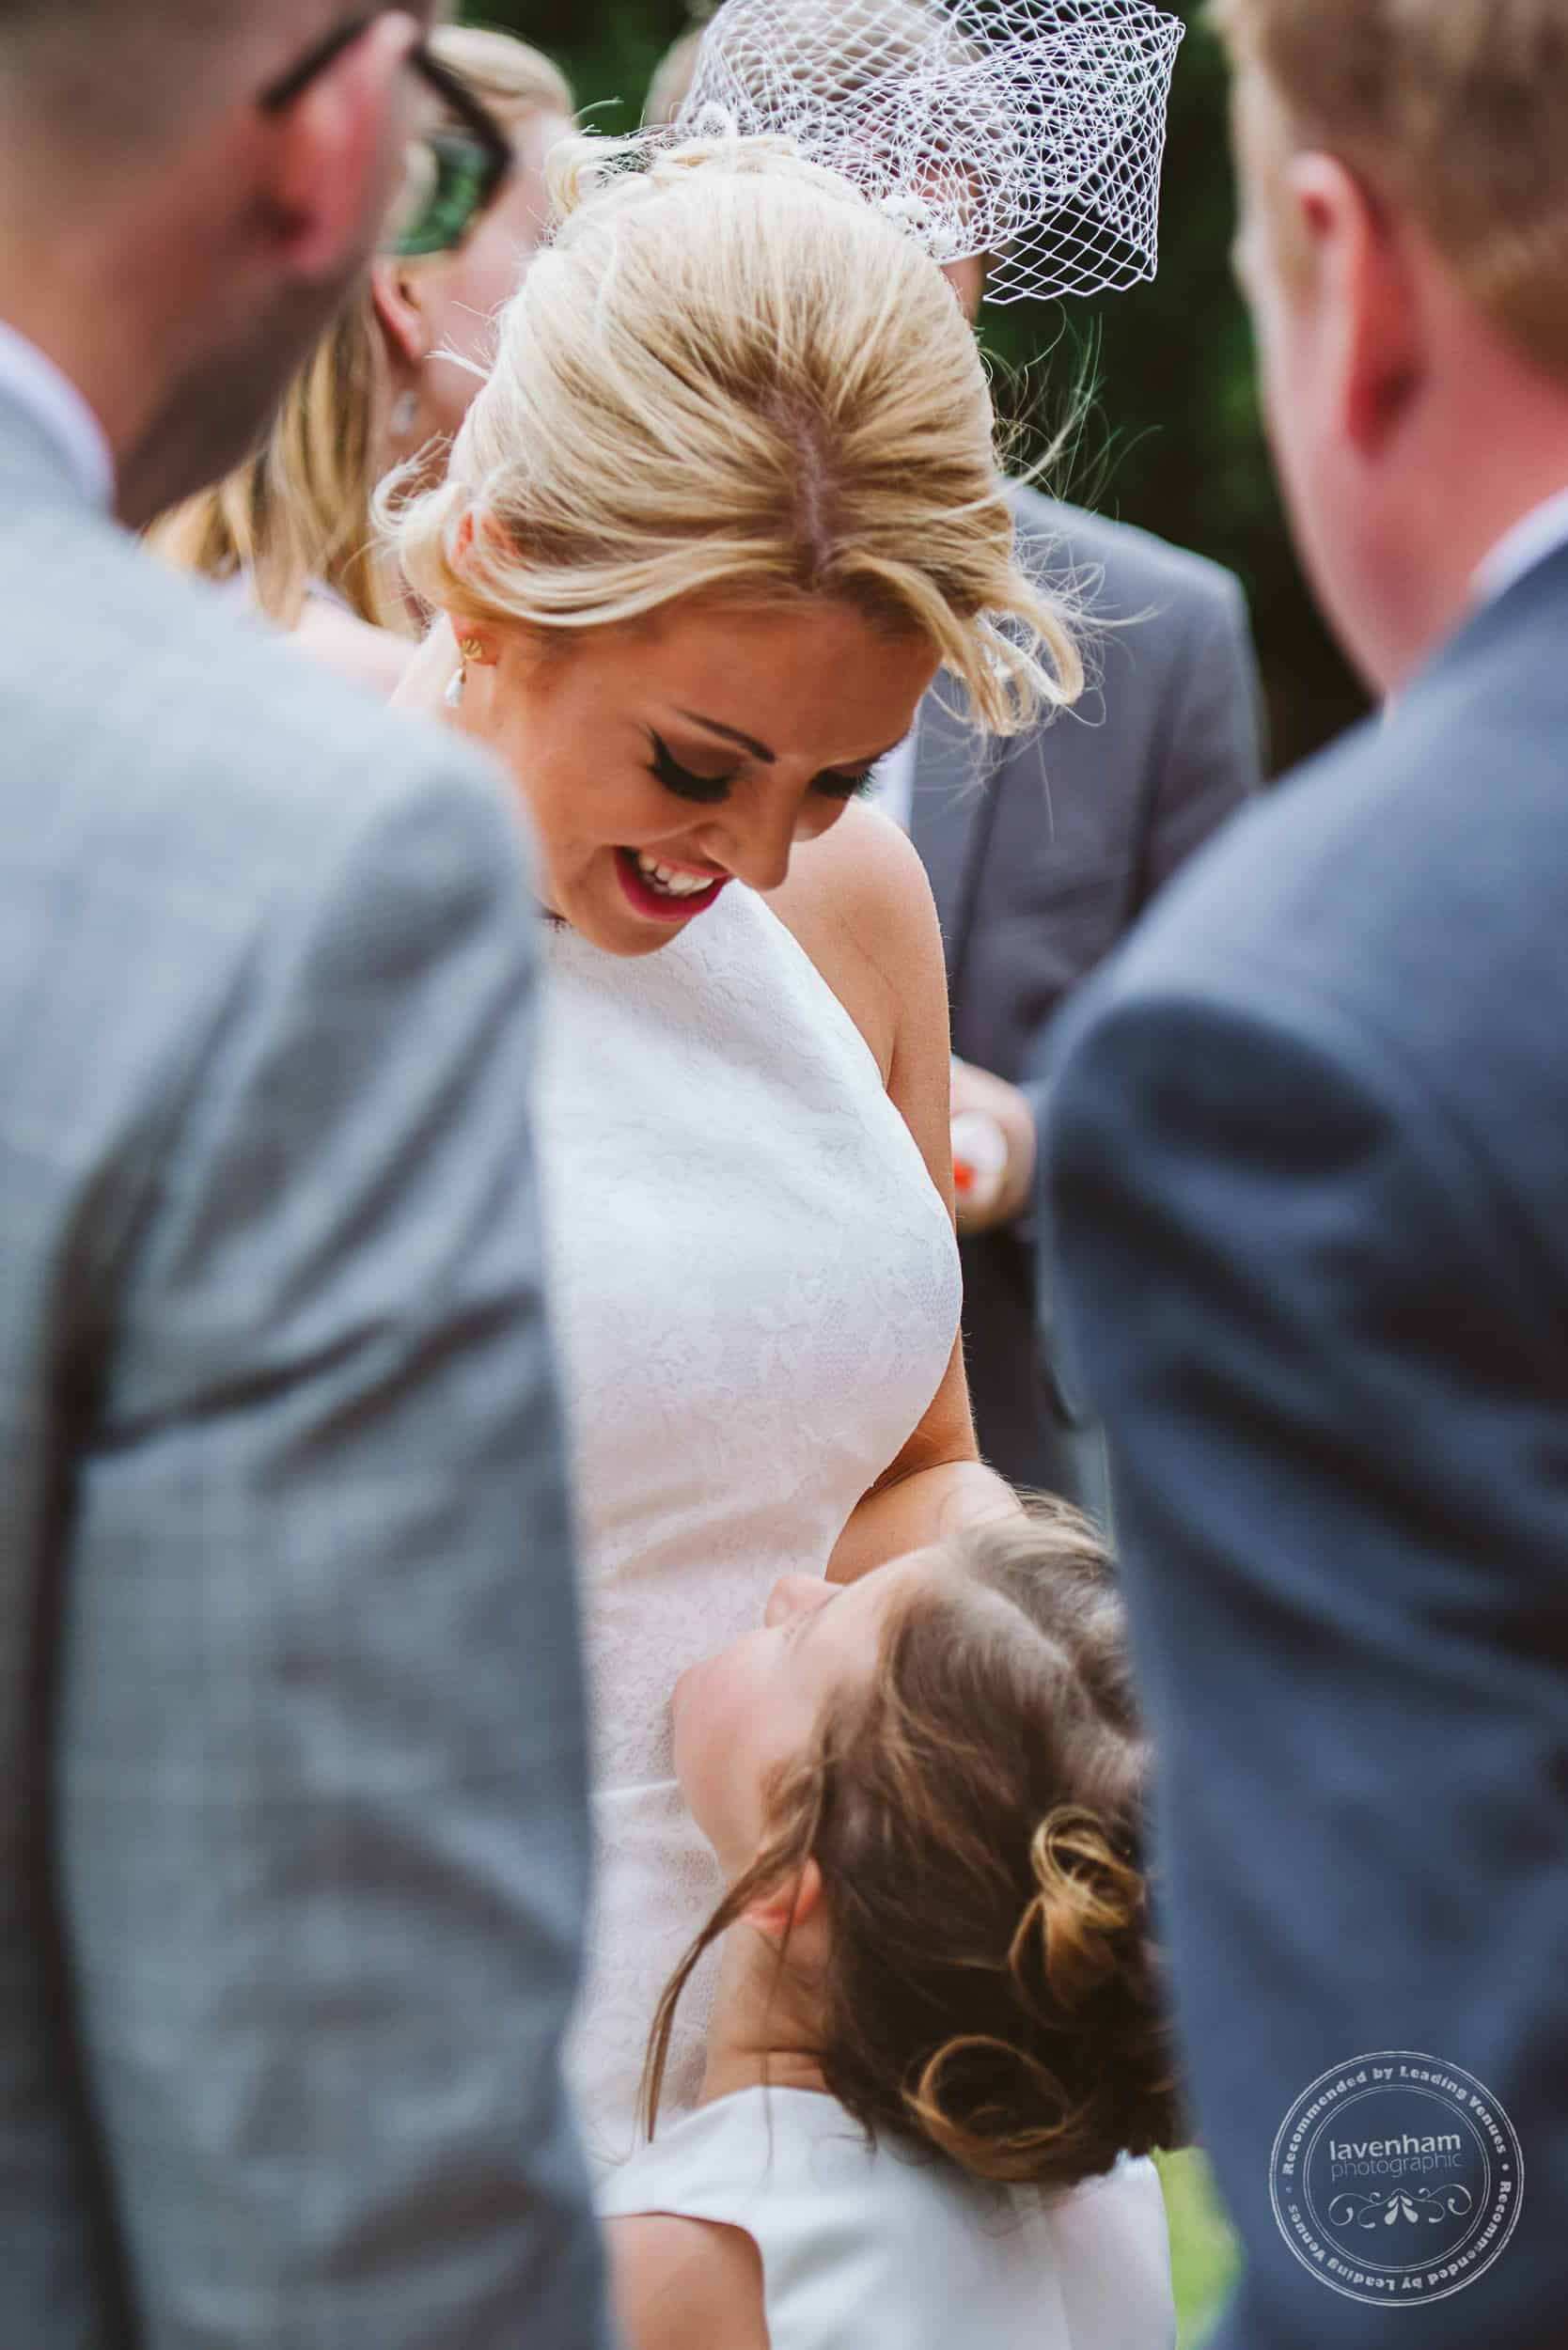 140717 Layer Marney Wedding Photography by Lavenham Photographic 071